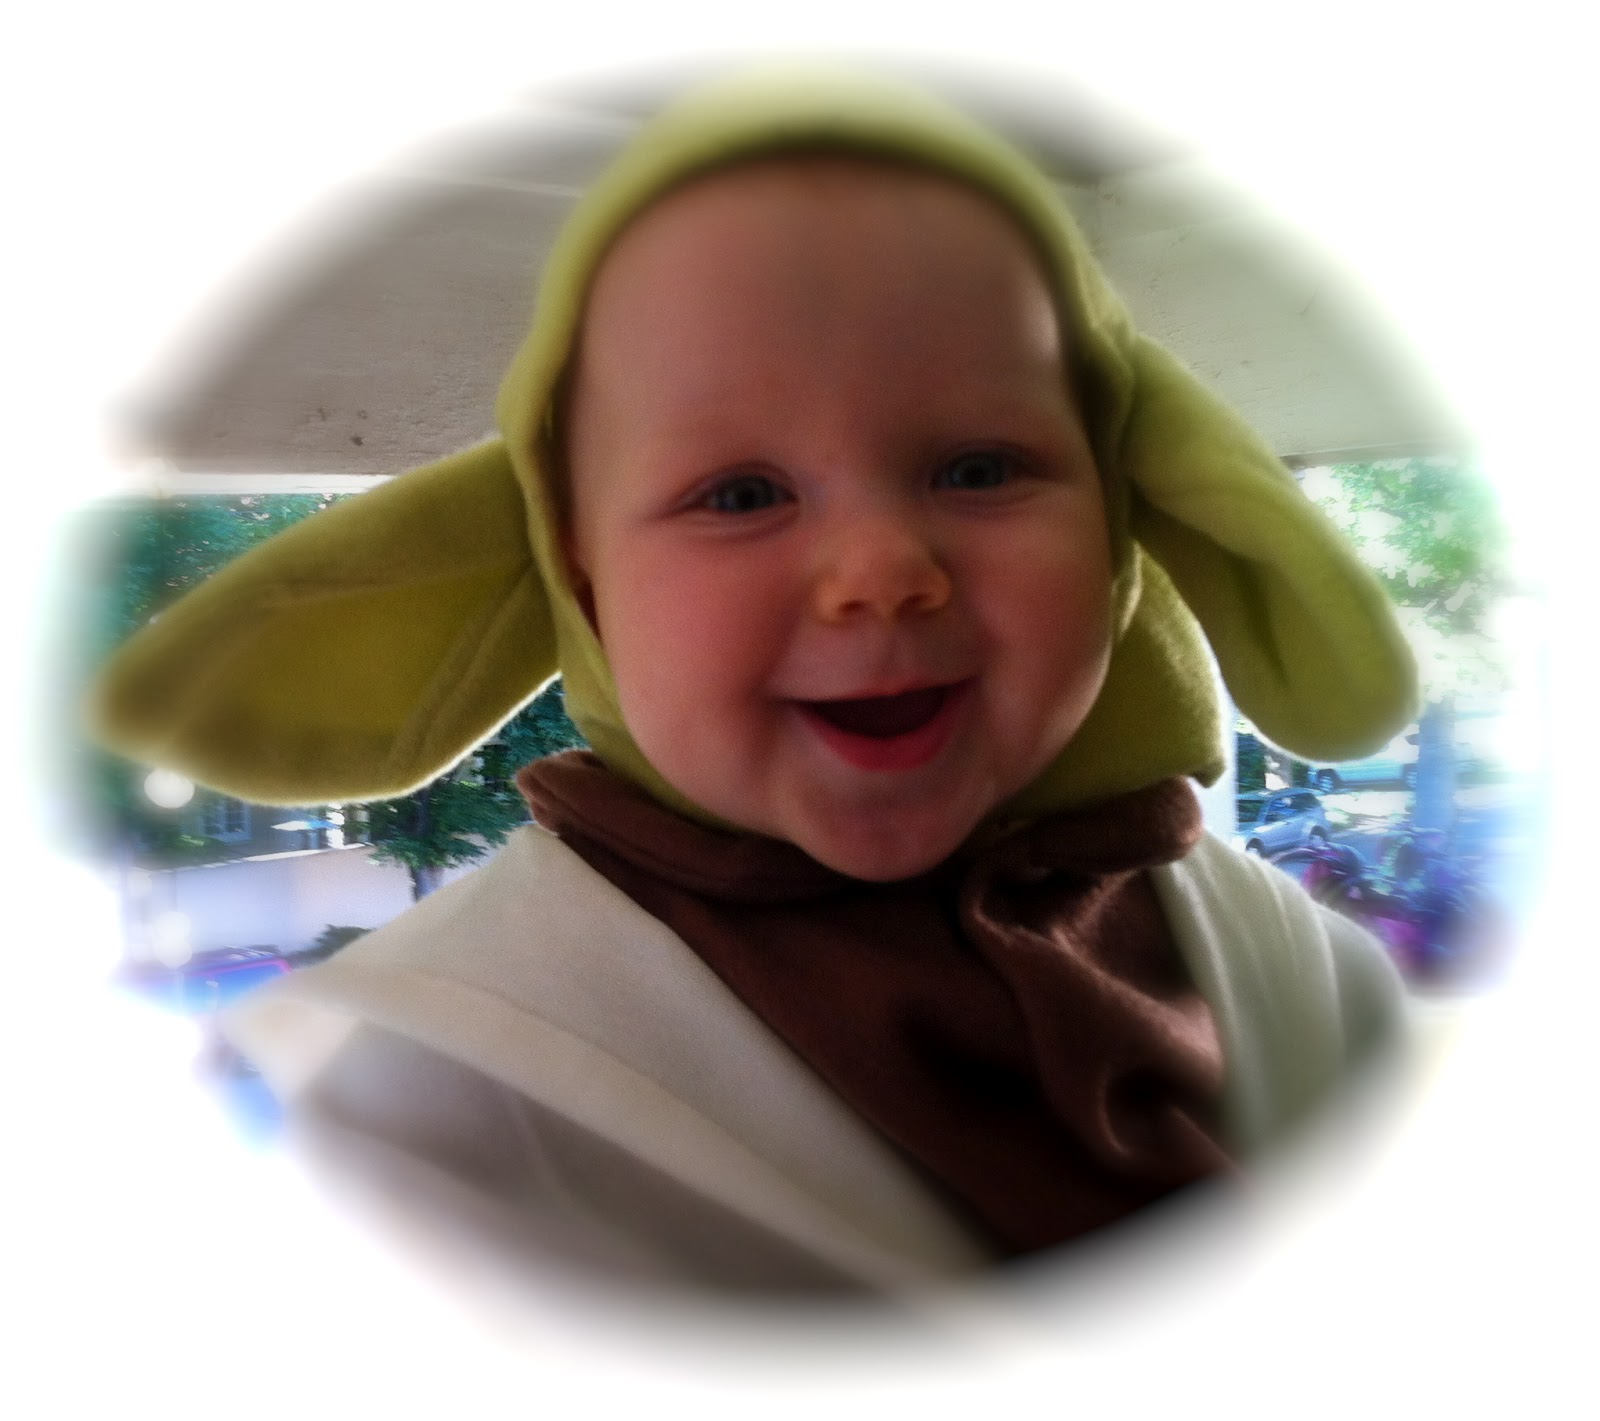 Halloween costume ideas and tips for babies toddlers and big kids!  sc 1 st  First Time Mom and Dad & Halloween costume ideas and tips for babies toddlers and big kids ...